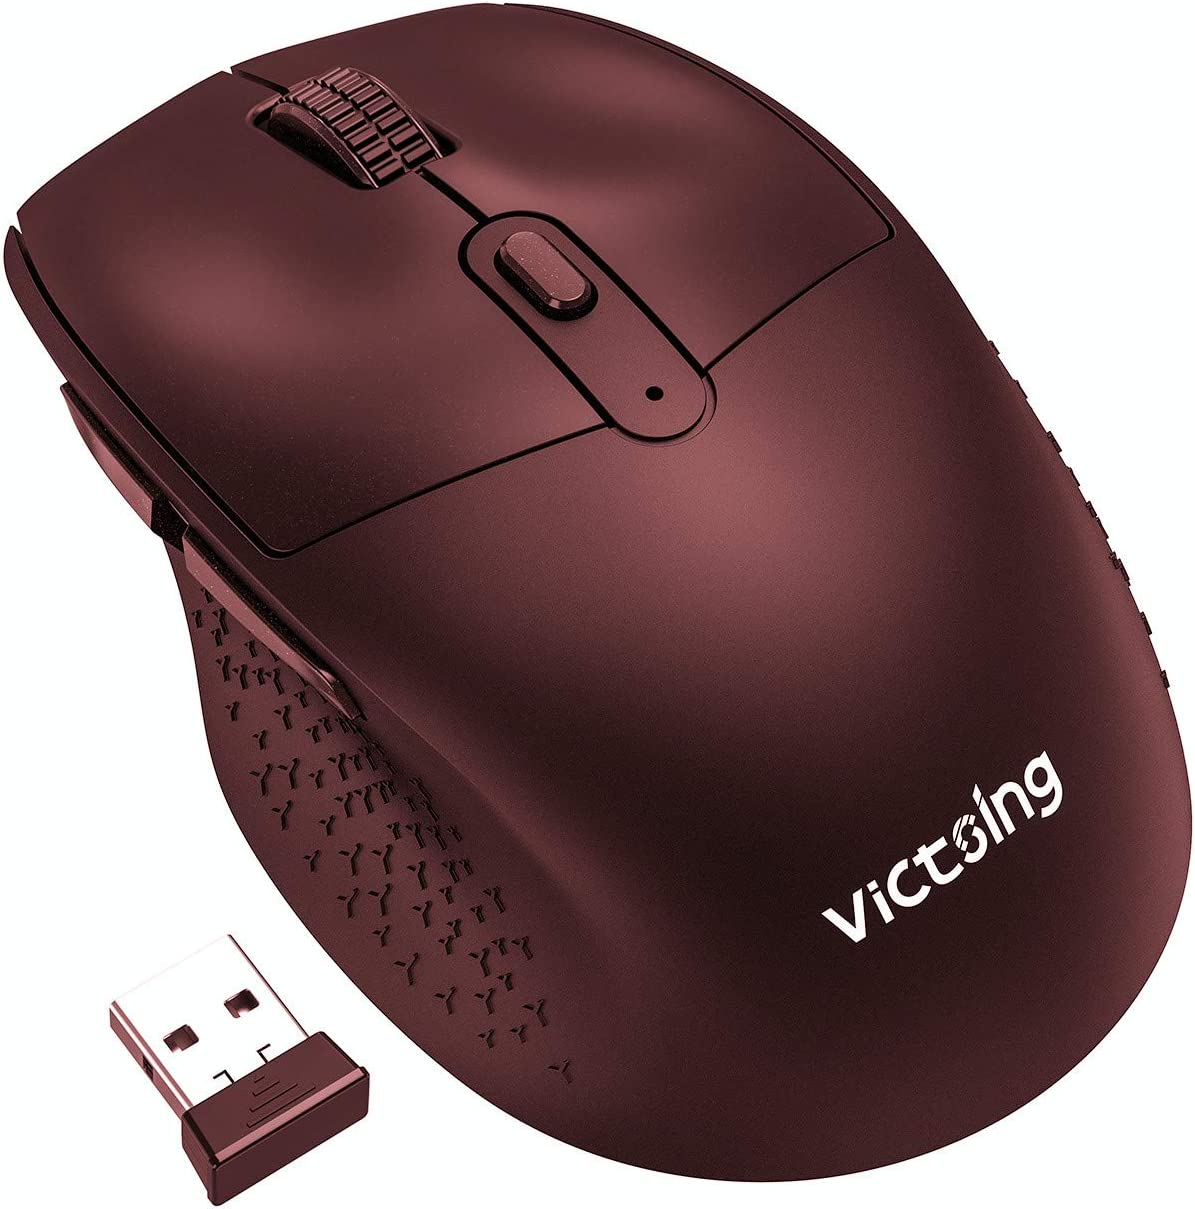 VicTsing Wireless Mouse Rechargeable, 2020 Unique Comfortable Ergonomic Mouse, Noiseless/Adjustable 2400DPI/6 Buttons, Cordless Mice with USB Receiver for PC, Computer, Laptop, MacBook